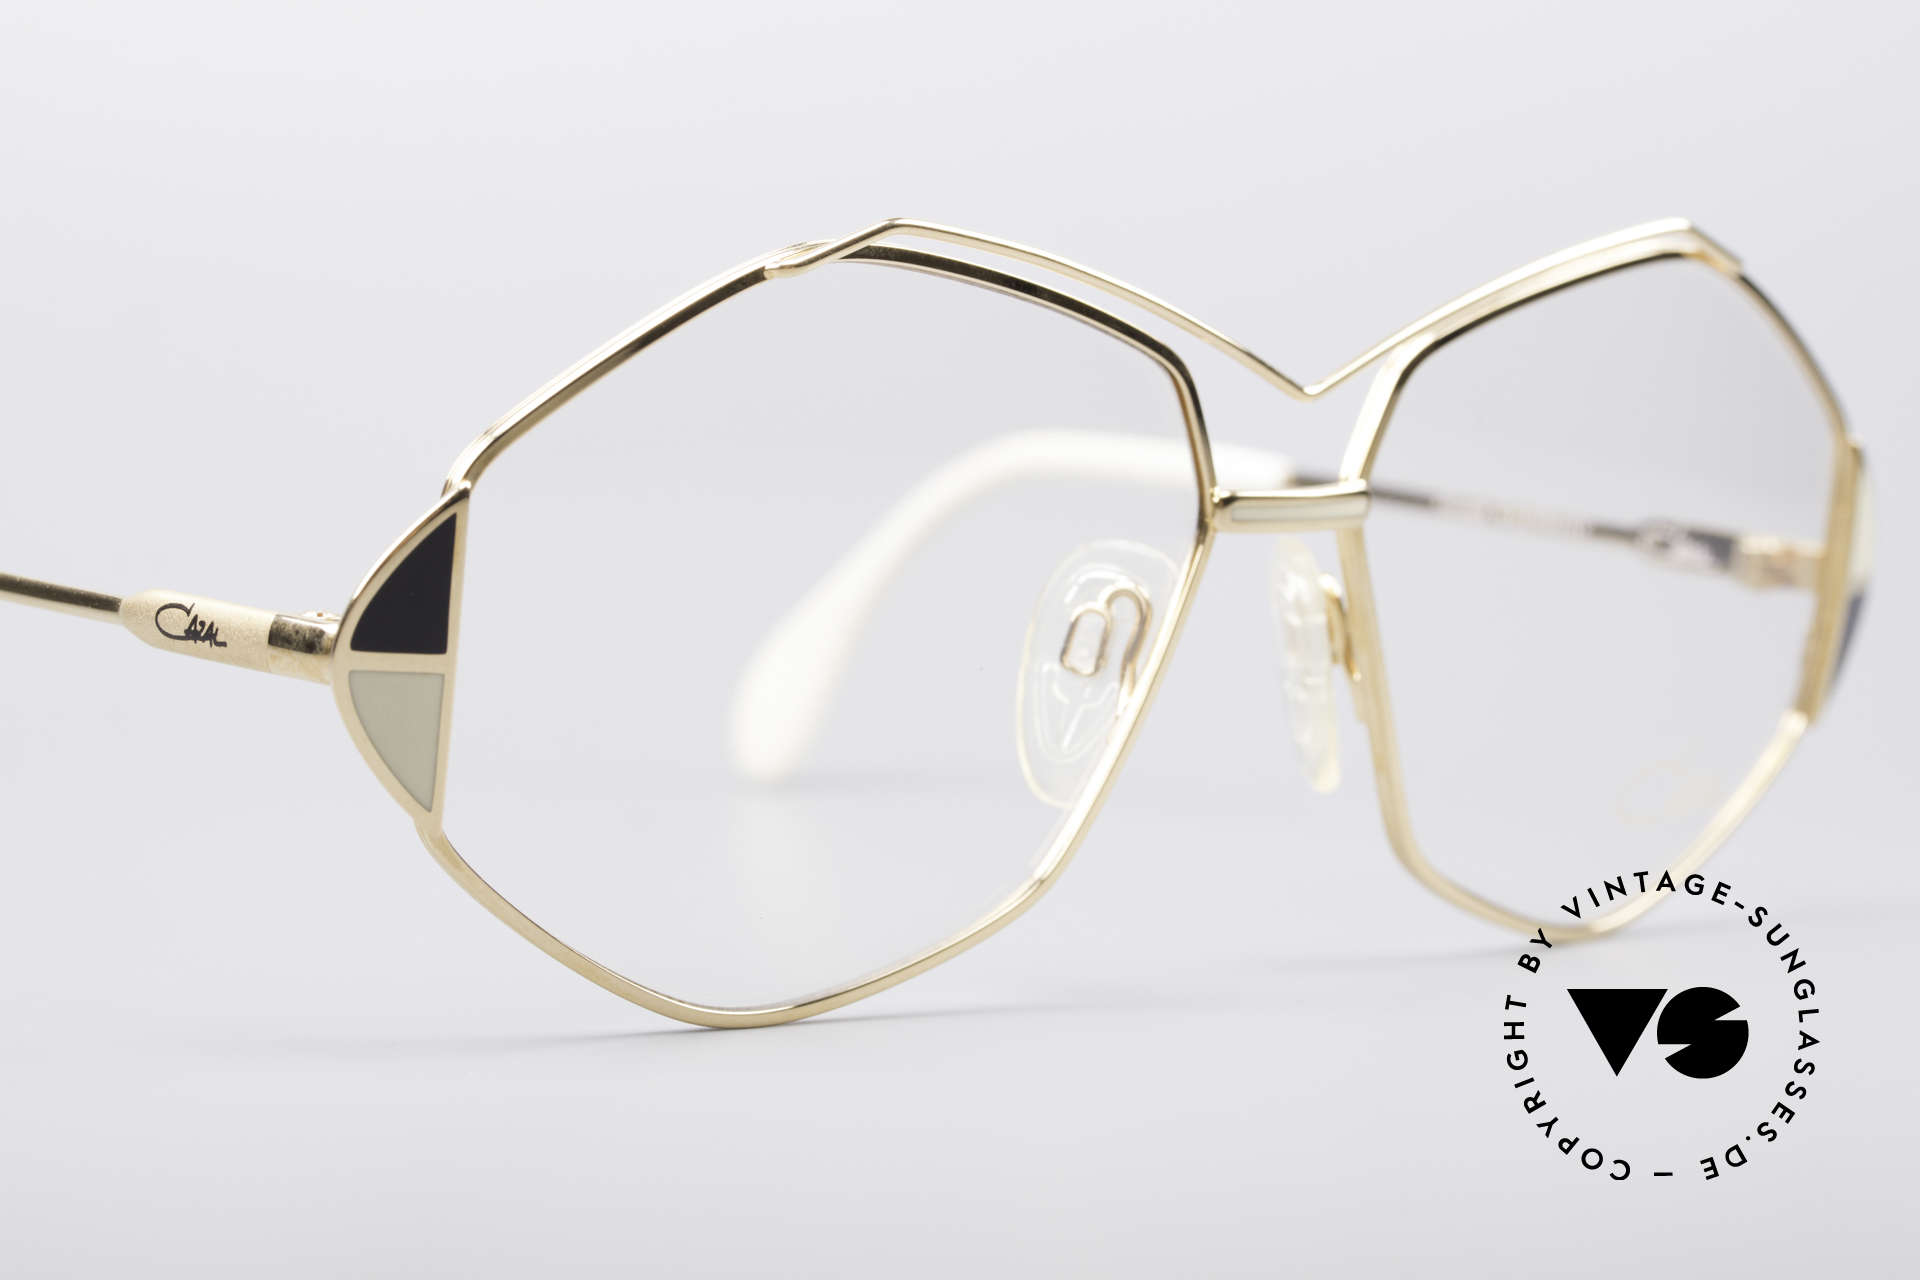 Cazal 233 Vintage West Germany Frame, NO RETRO fashion, but a rare old 80's ORIGINAL, Made for Women